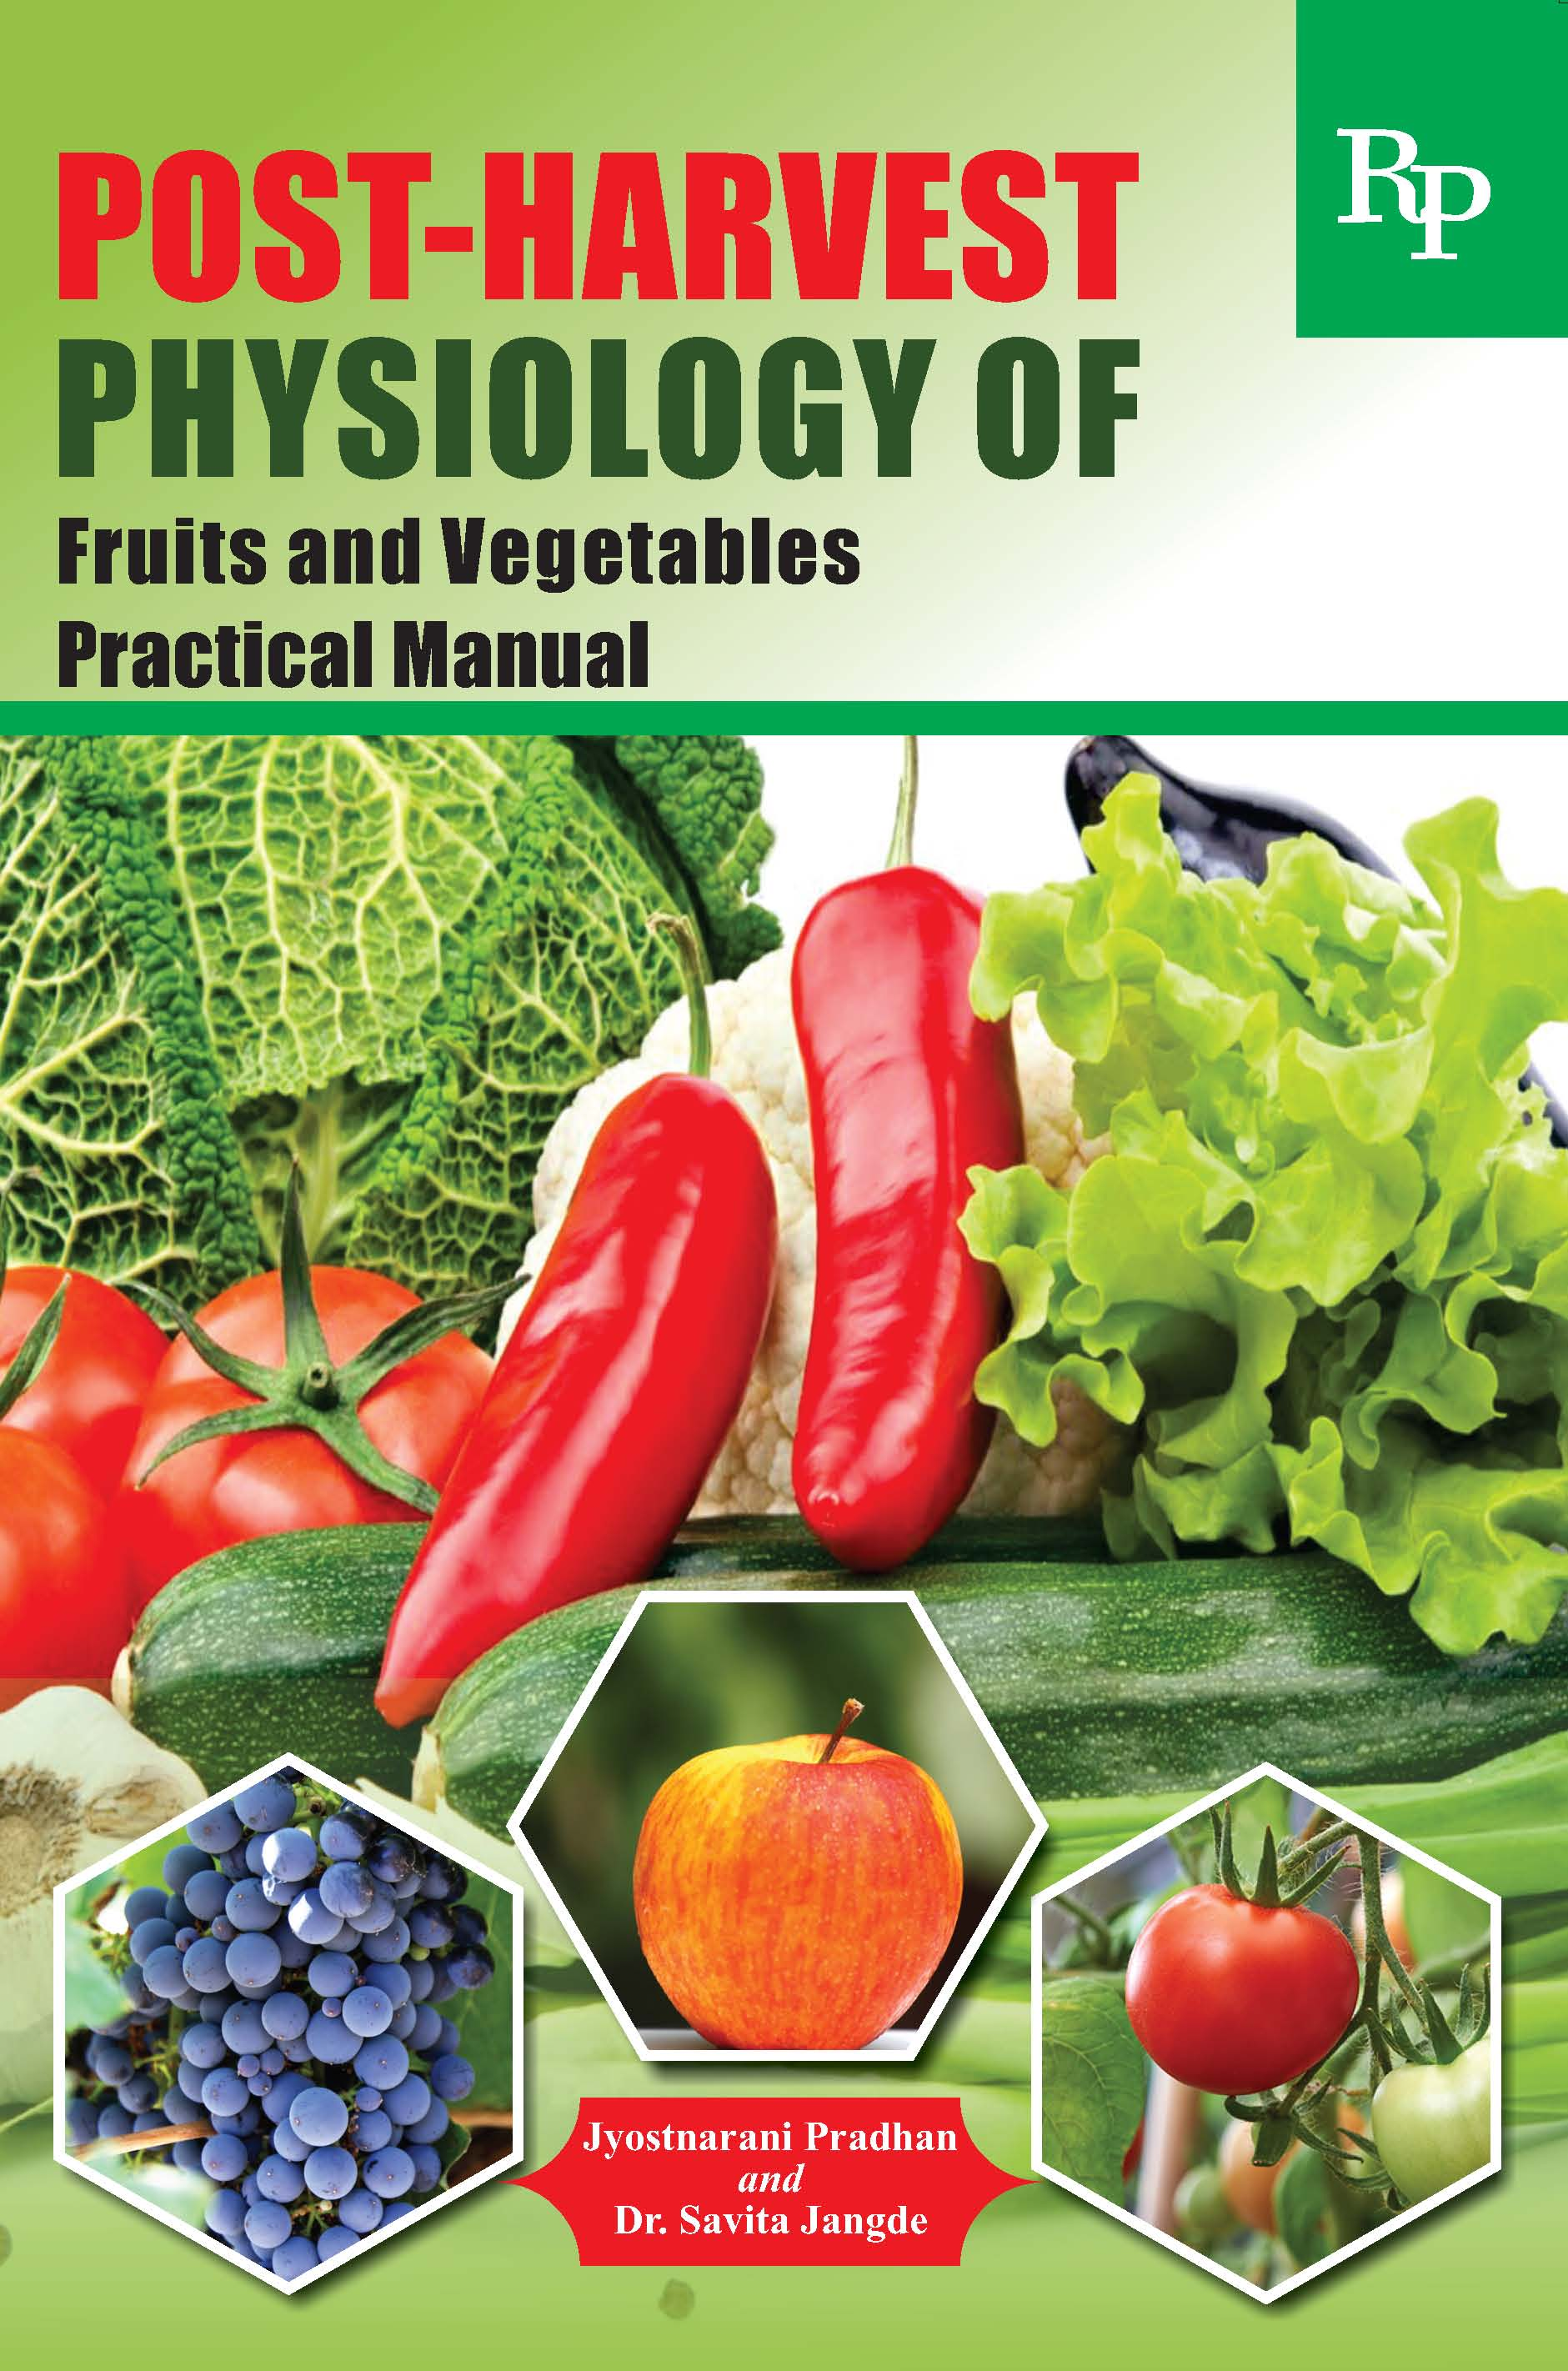 POST-HARVEST PHYSIOLOGY OF FRUITS AND VEGETABLES PRACTICAL MANUAL.jpg